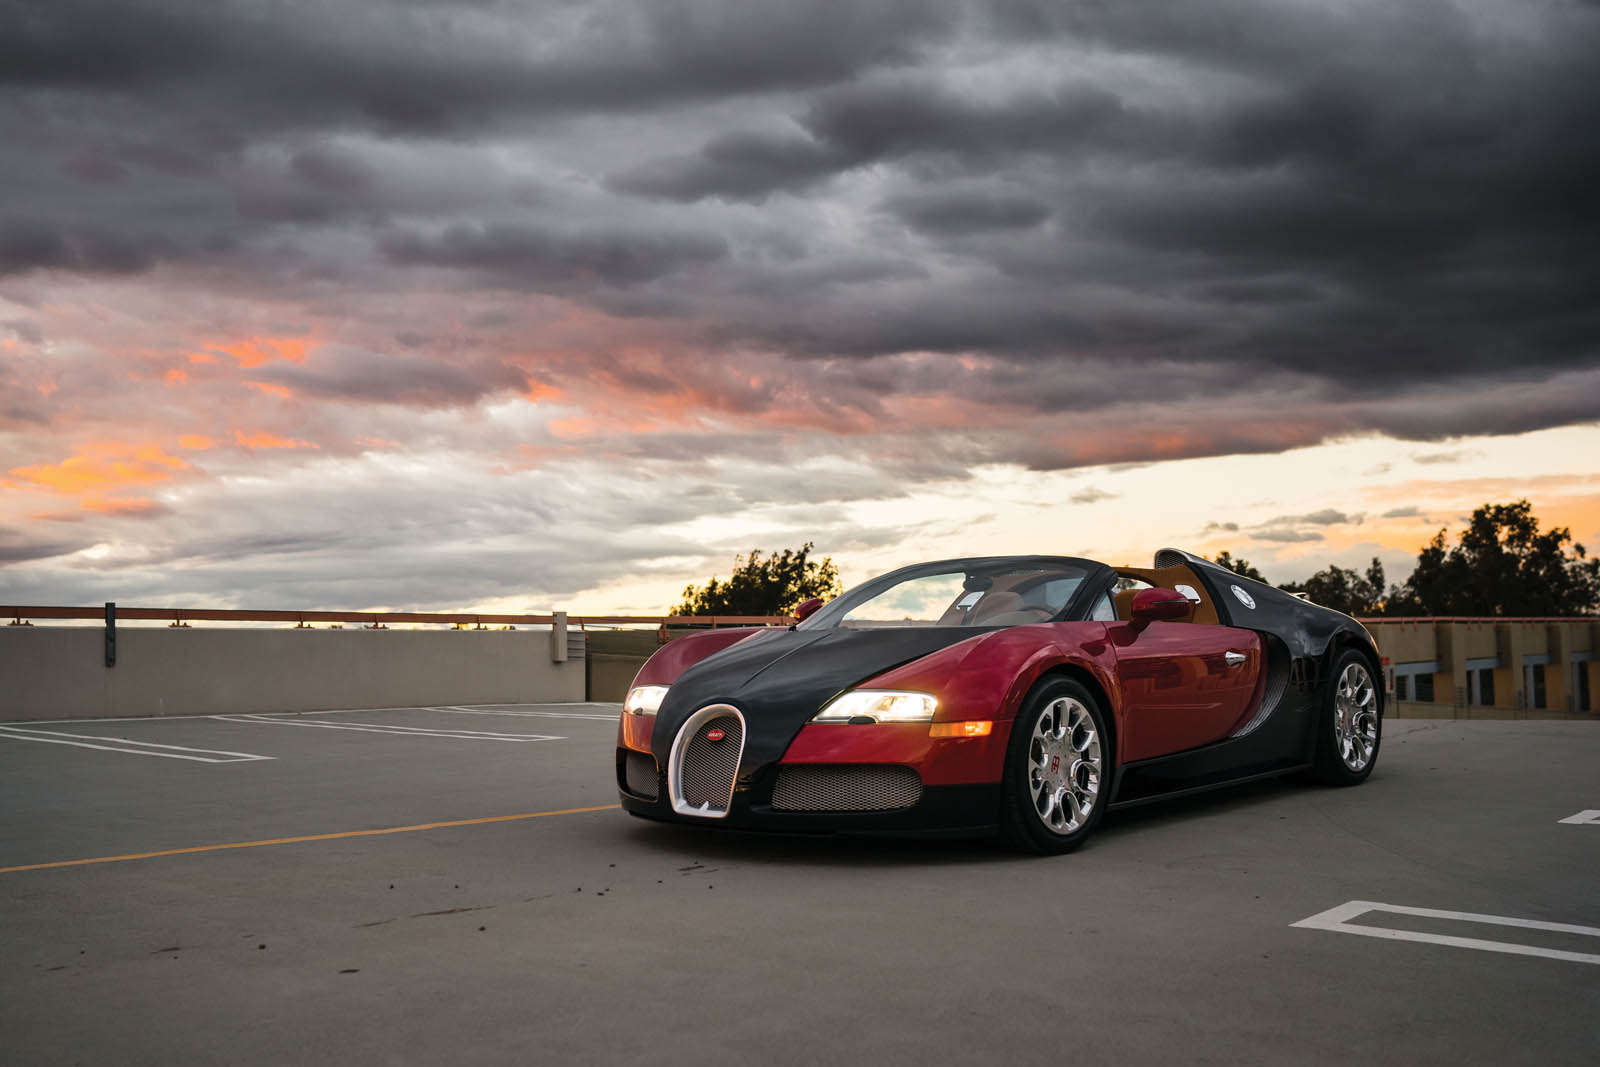 Bugatti_Veyron_Grand_Sport_for_sale_01